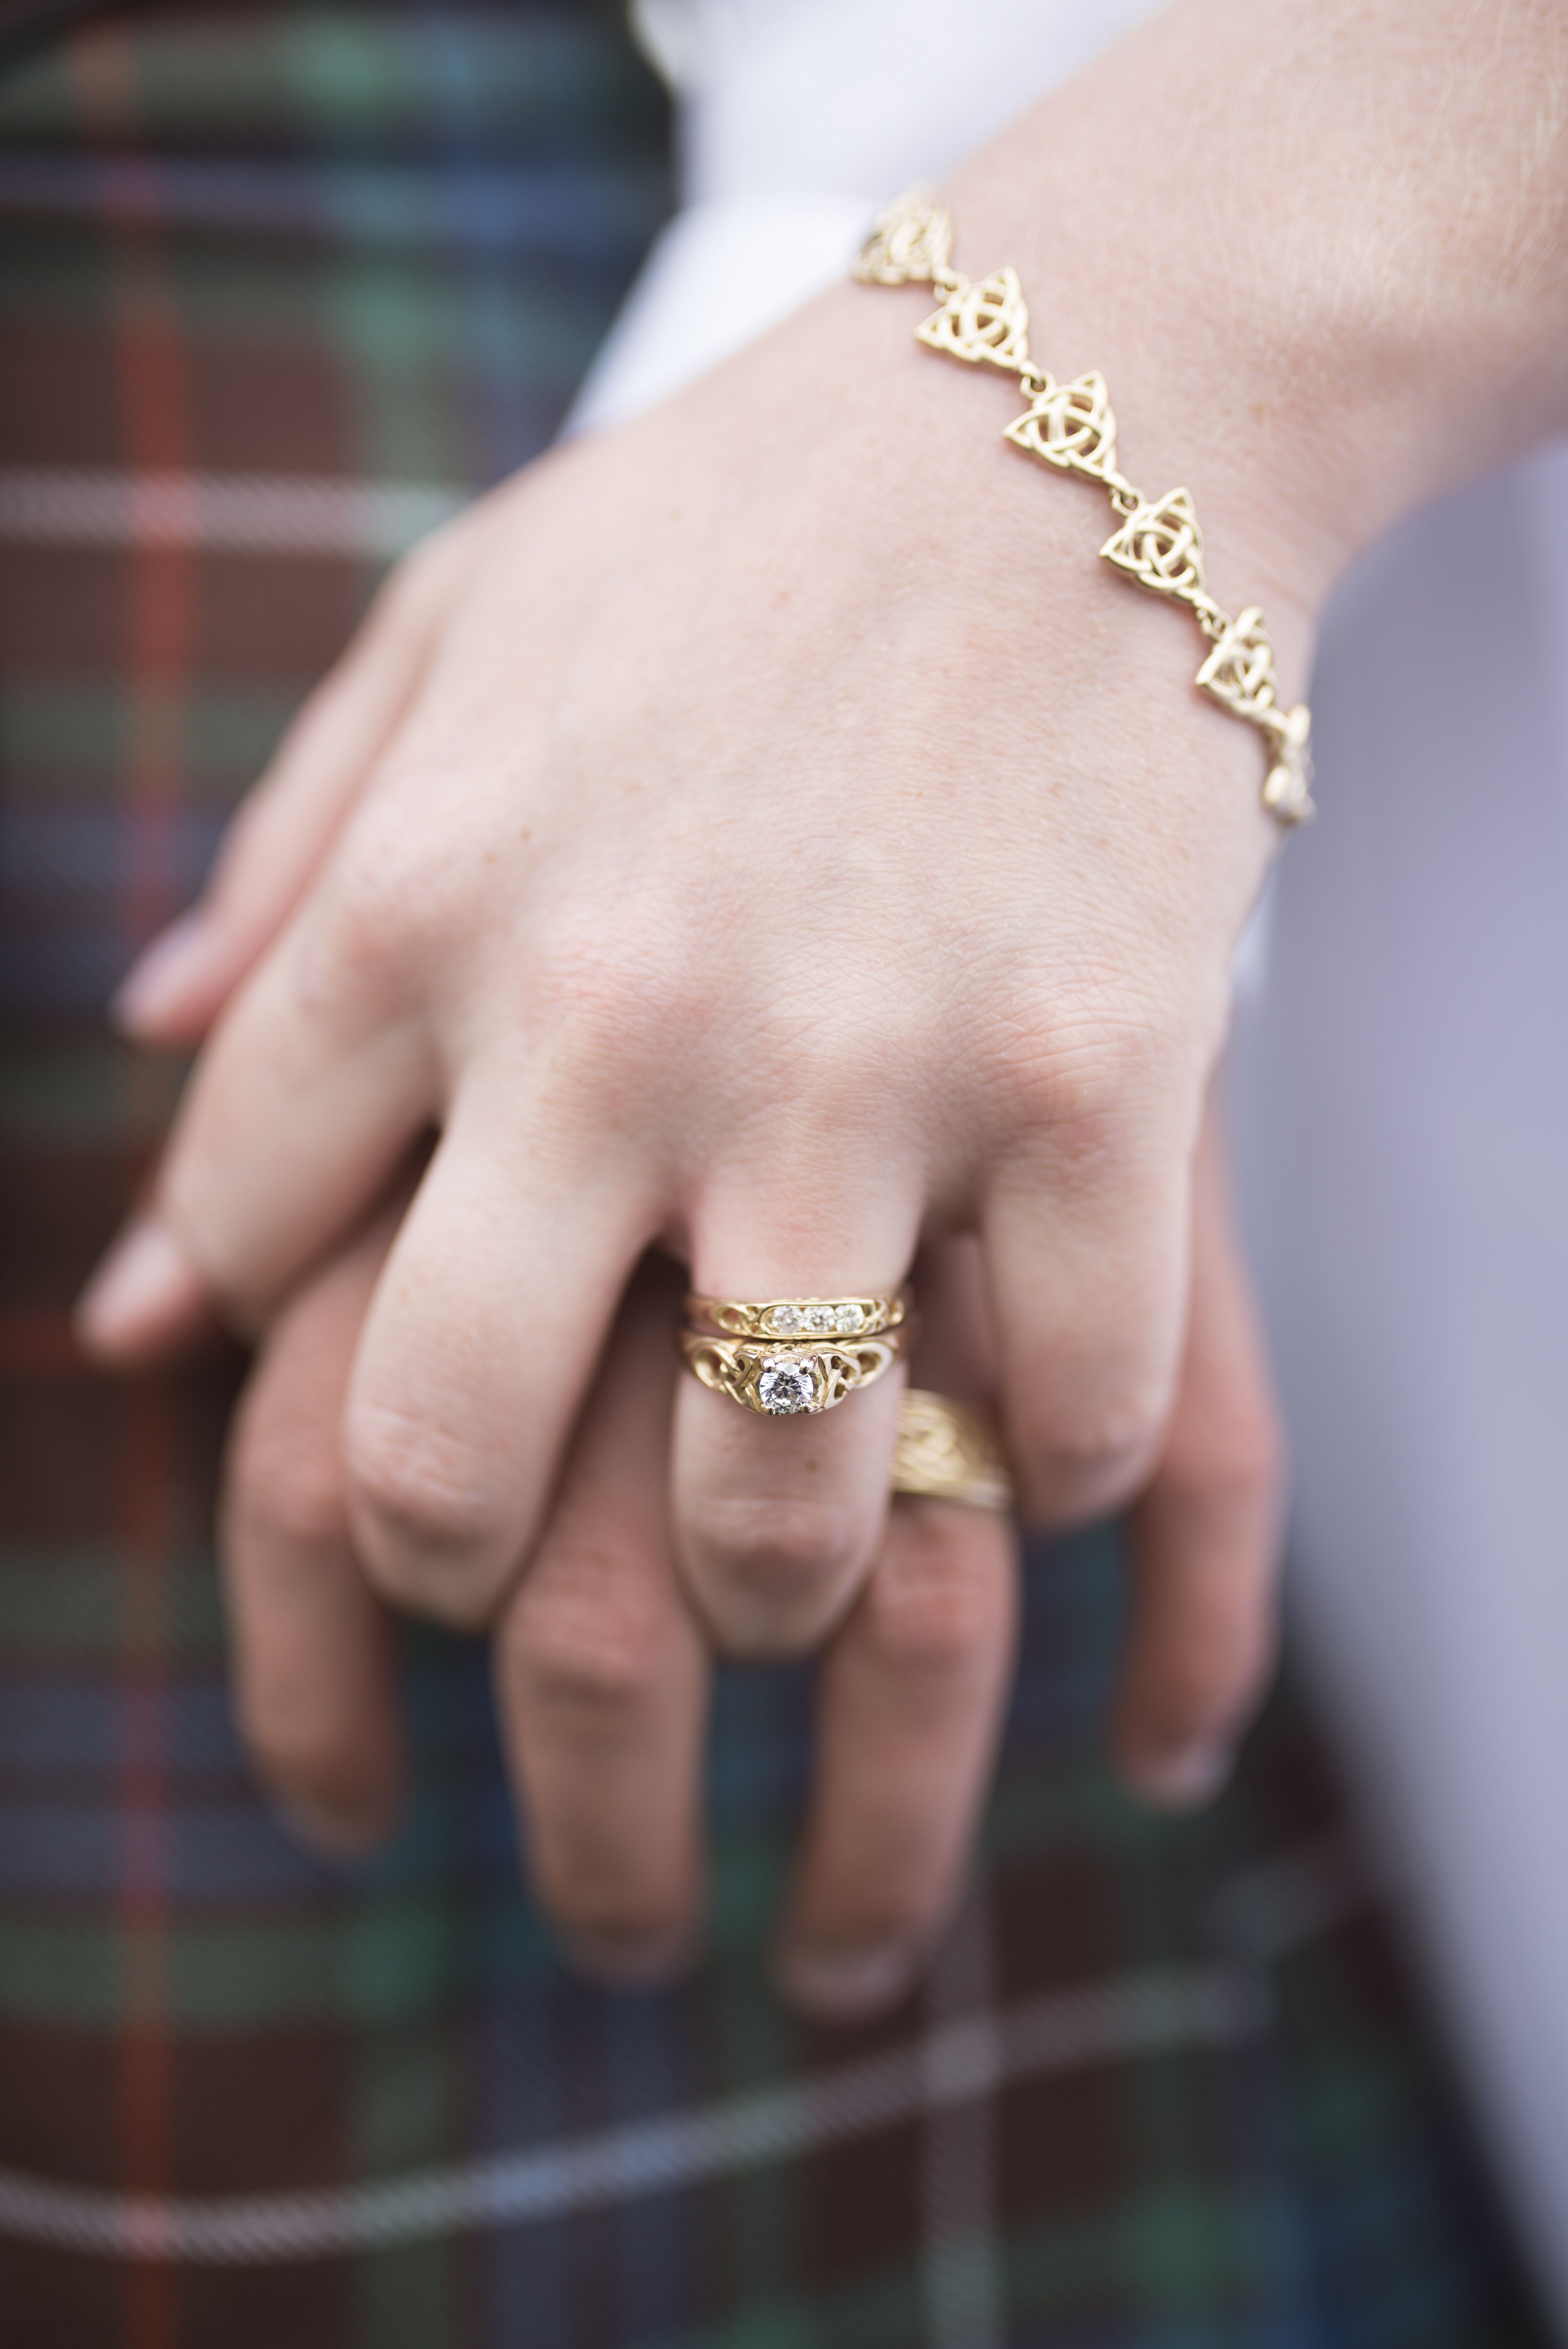 Cathedral Diamond Engagement Ring | Engagement ring photos ...